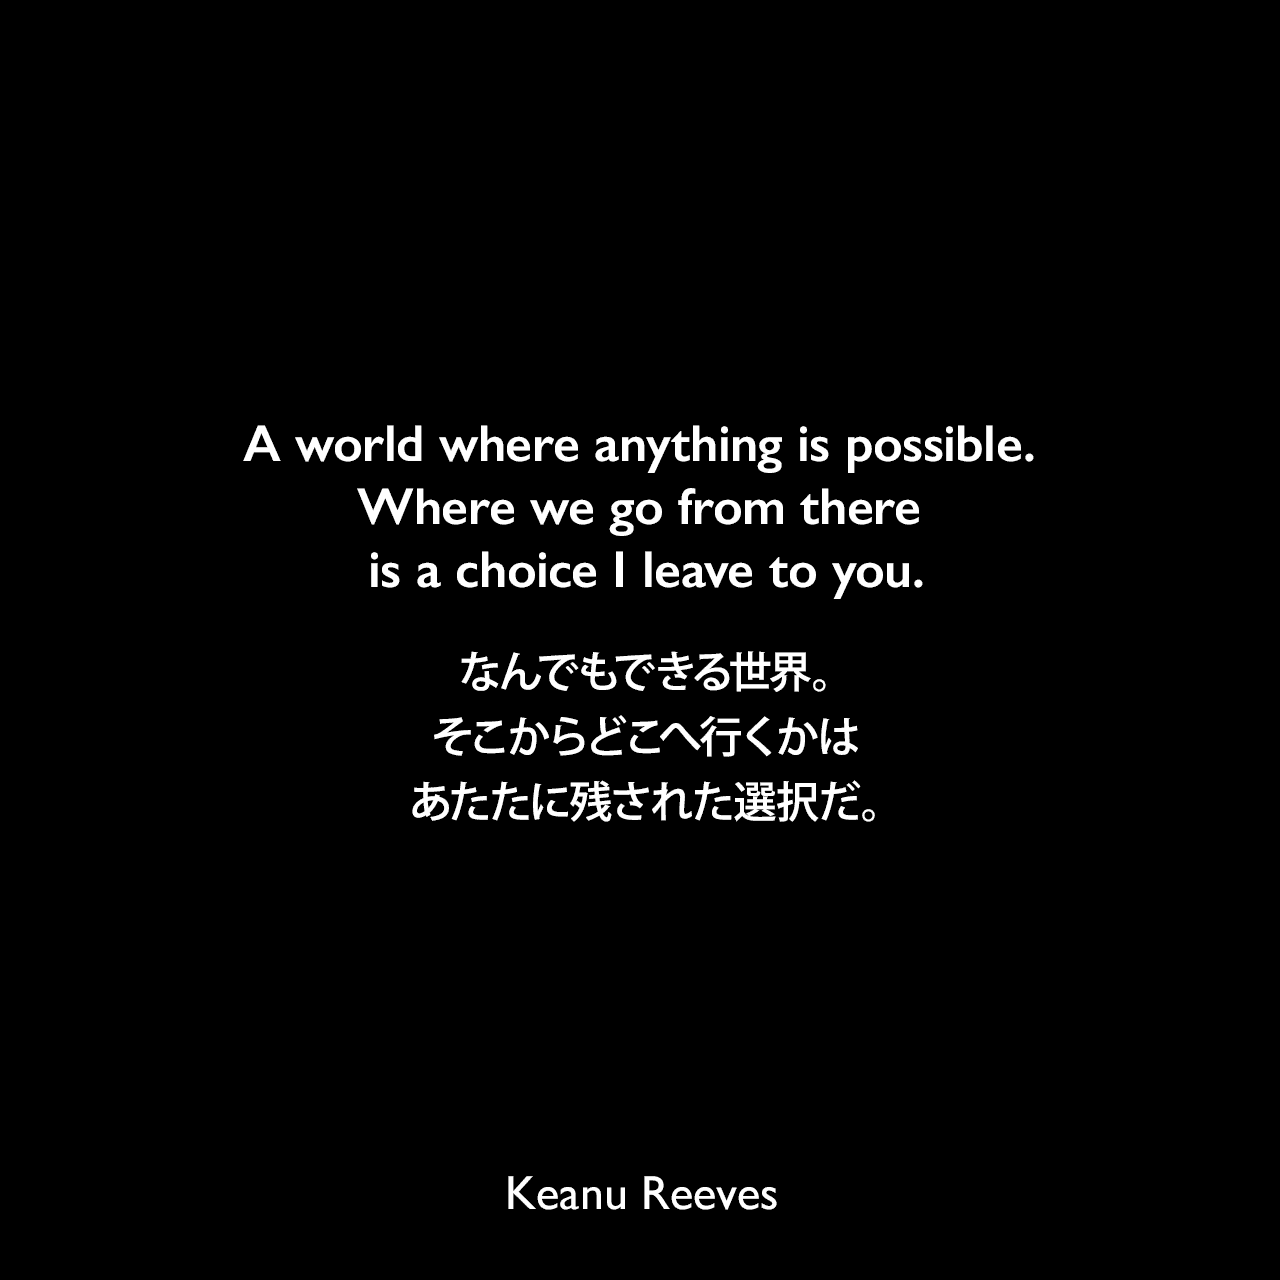 A world where anything is possible. Where we go from there is a choice I leave to you.なんでもできる世界。そこからどこへ行くかは、あたたに残された選択だ。- 1999年映画マトリックスのセリフよりKeanu Reeves